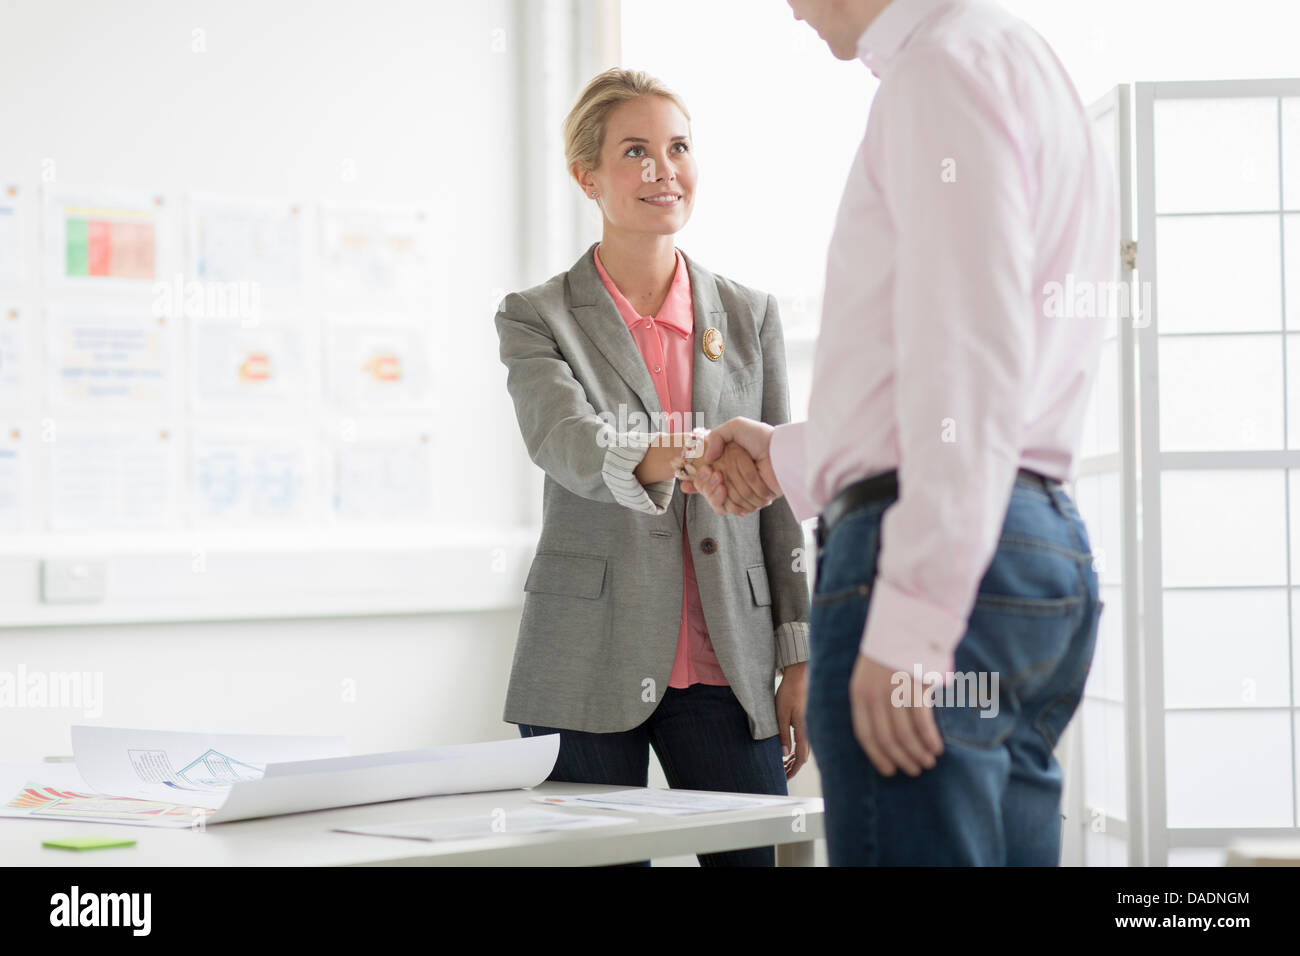 Businesswoman shaking hands with man in office - Stock Image